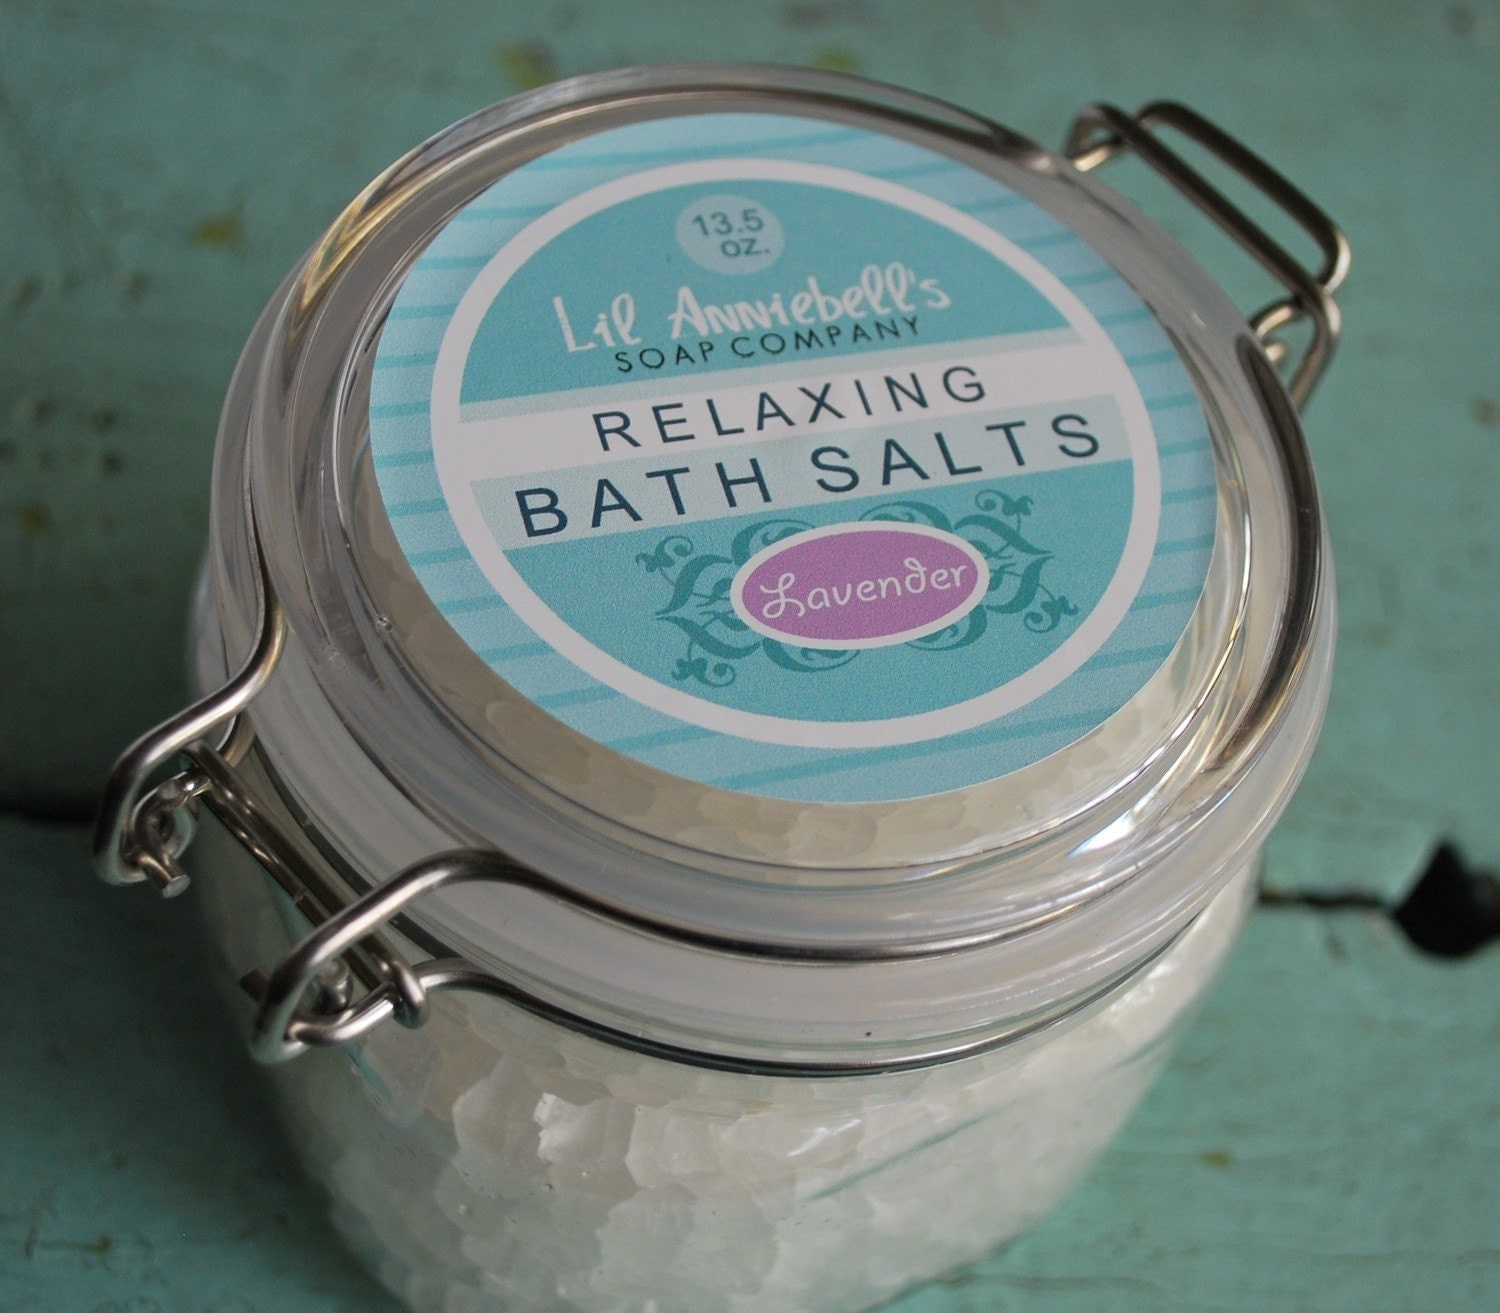 Relaxing Bath Salts with Lavender Essential Oil